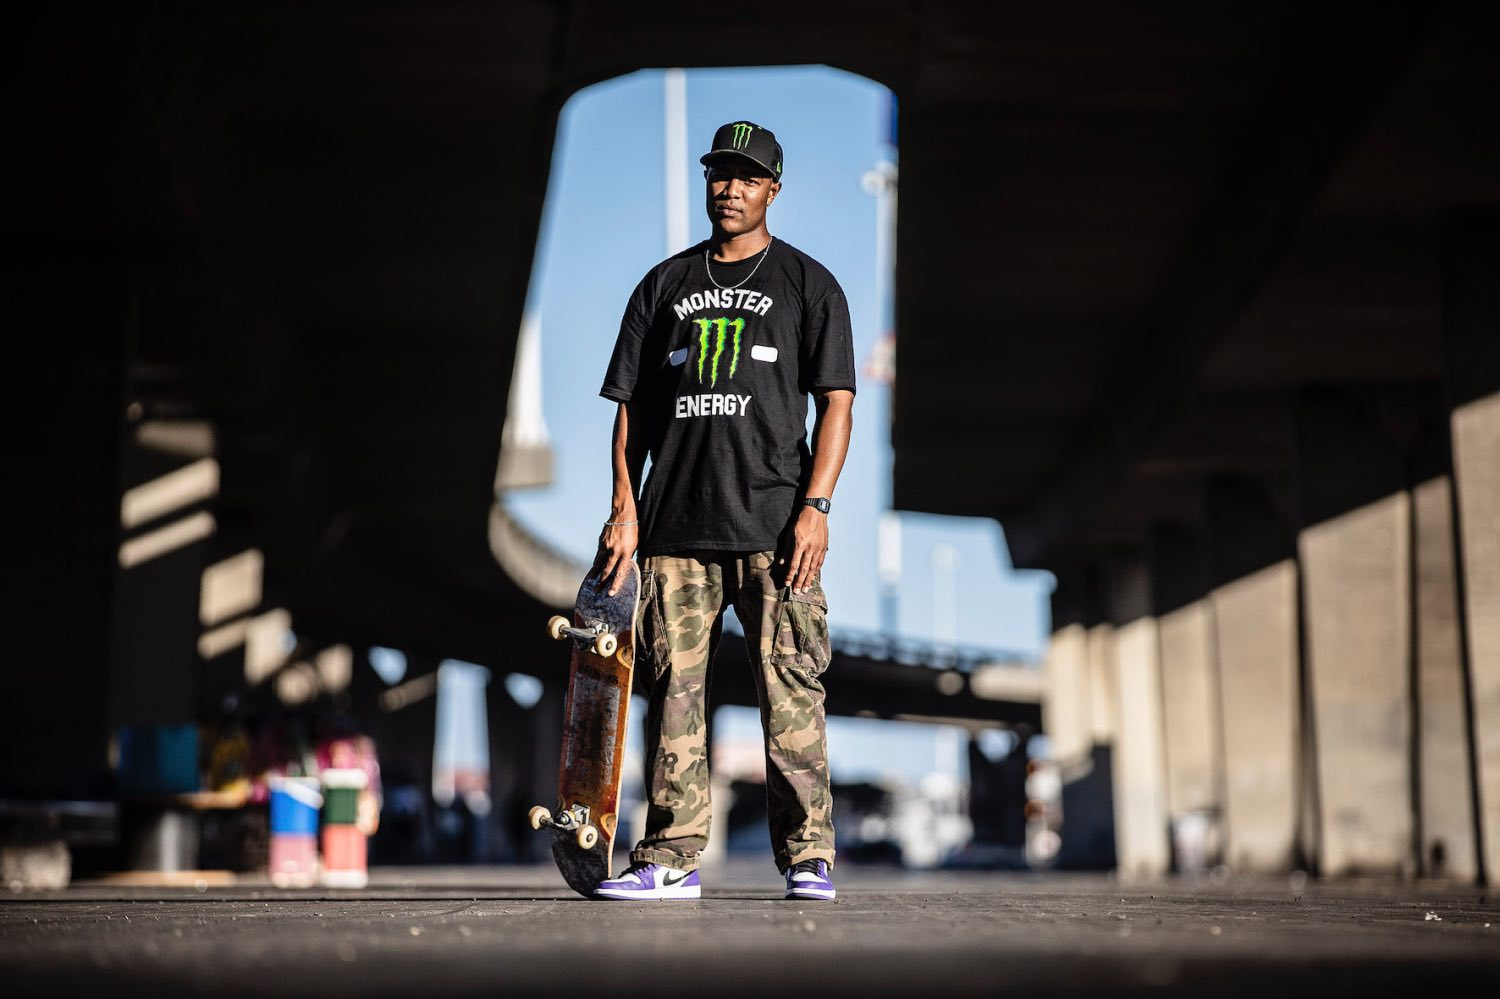 Having recently joined Monster Energy as their newest ambassador, we catch up with DJ Speedstato chat about his Metro FM show, skateboarding and new role.